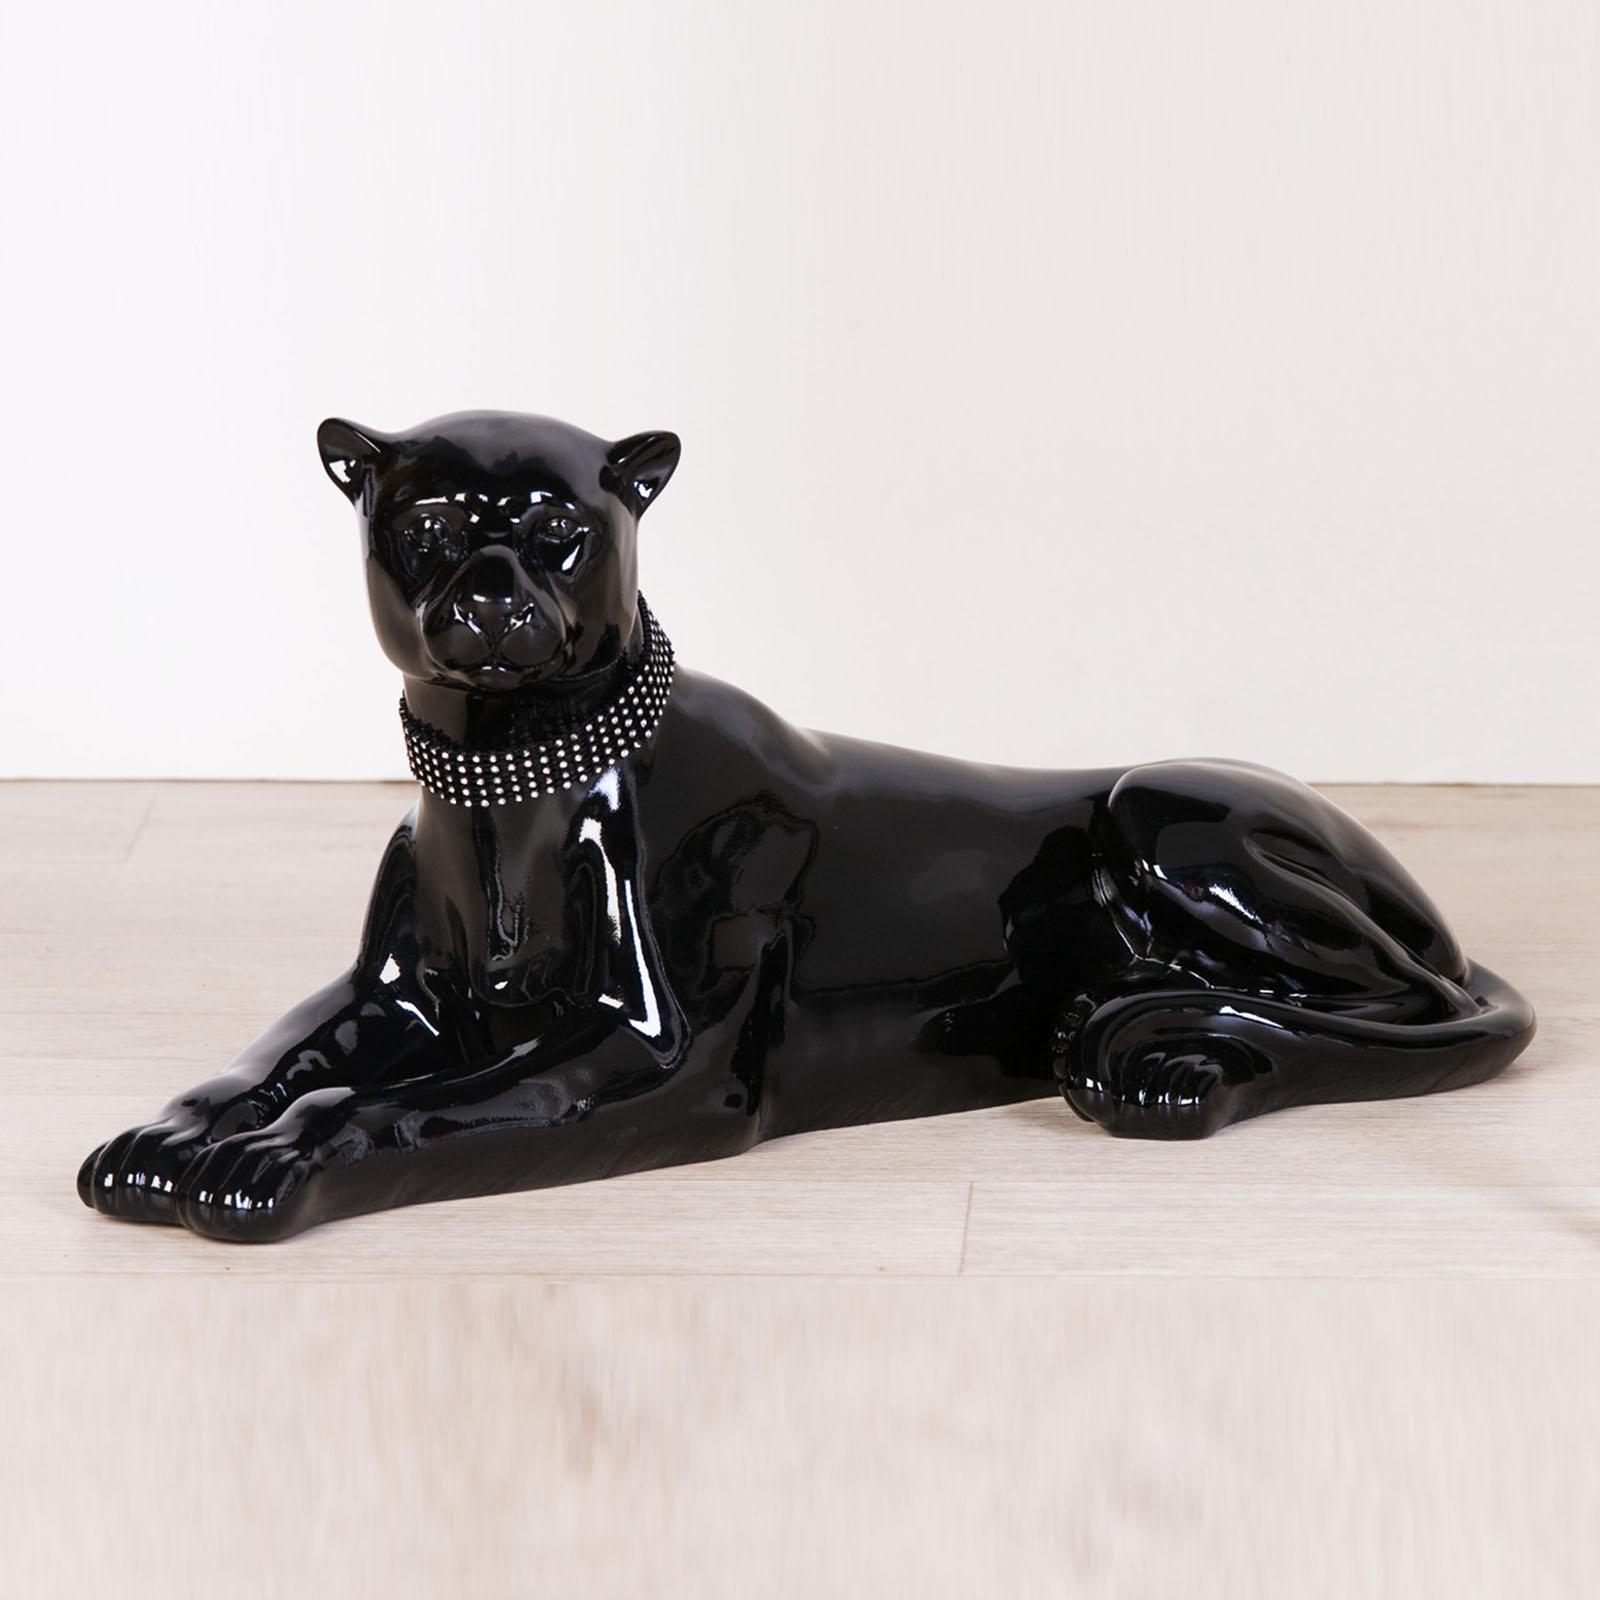 design figurine panther black luxury statue sculpture wild cat home decor. Black Bedroom Furniture Sets. Home Design Ideas